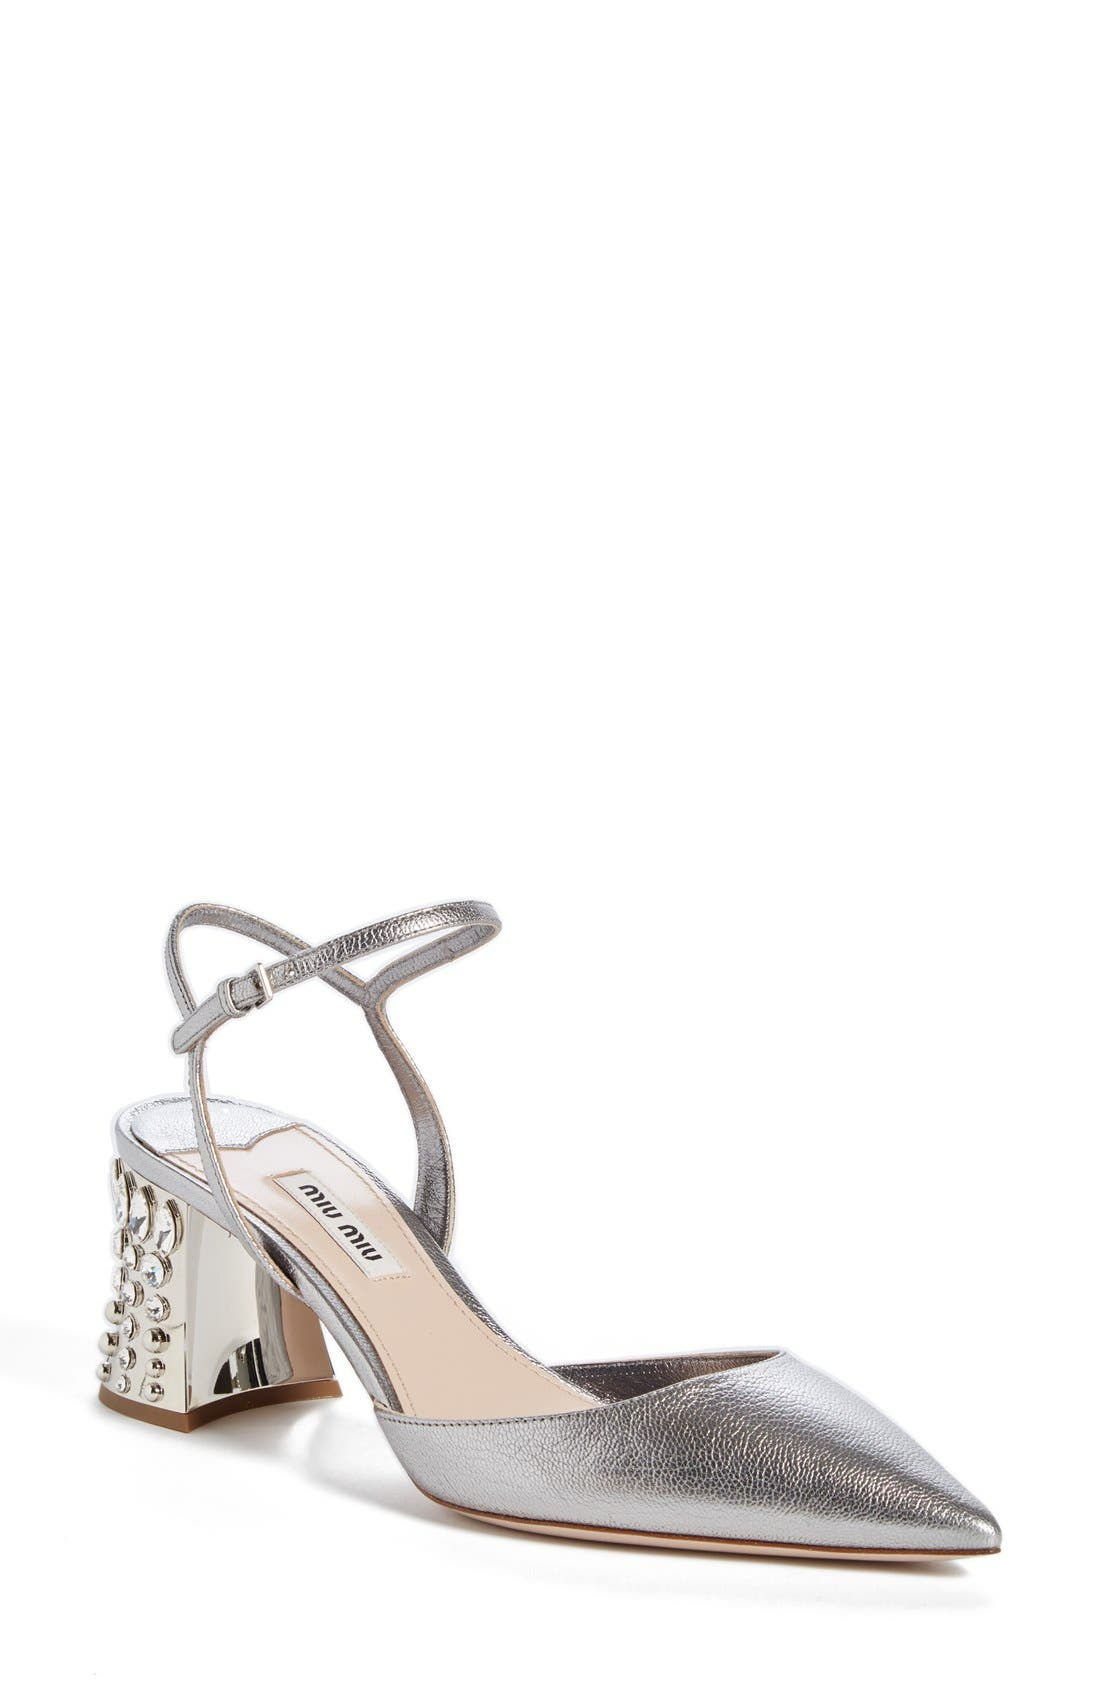 Jeweled Heel Ankle Strap Pump,                         Main,                         color, Metallic Silver Leather